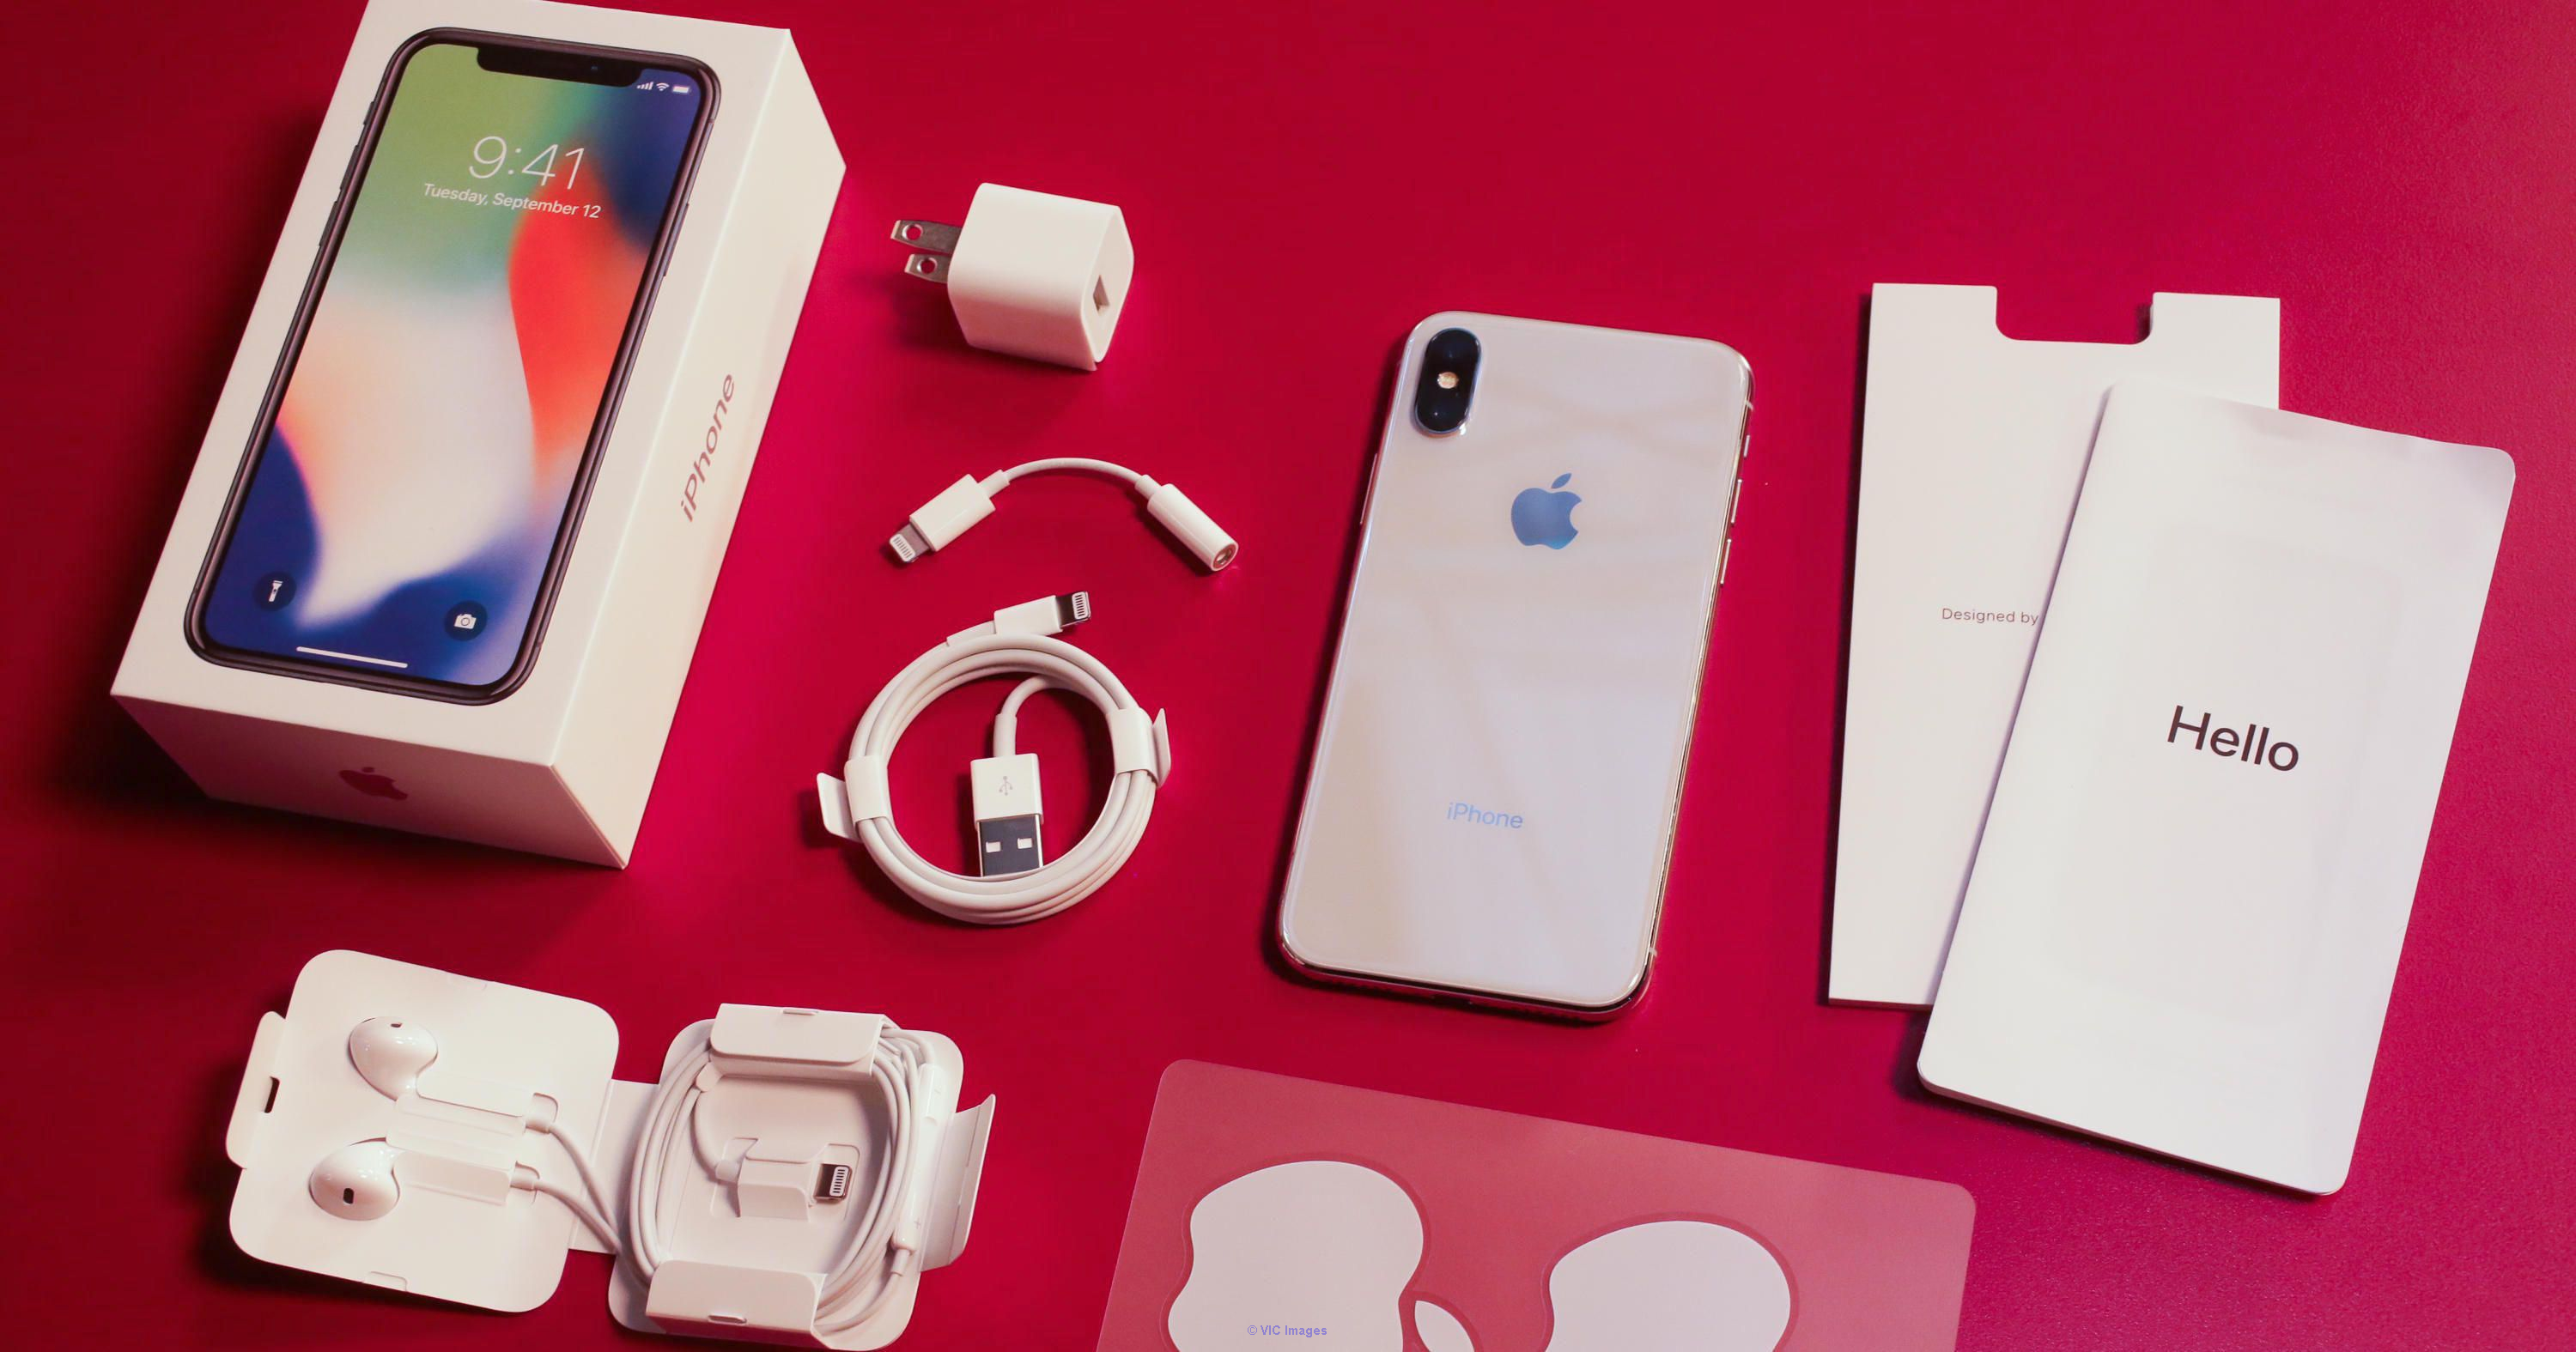 For Sale: Apple Iphone X And Samsung S9 Plus And Note 9 Tbilisi, Georgia (Gruzia) Classifieds